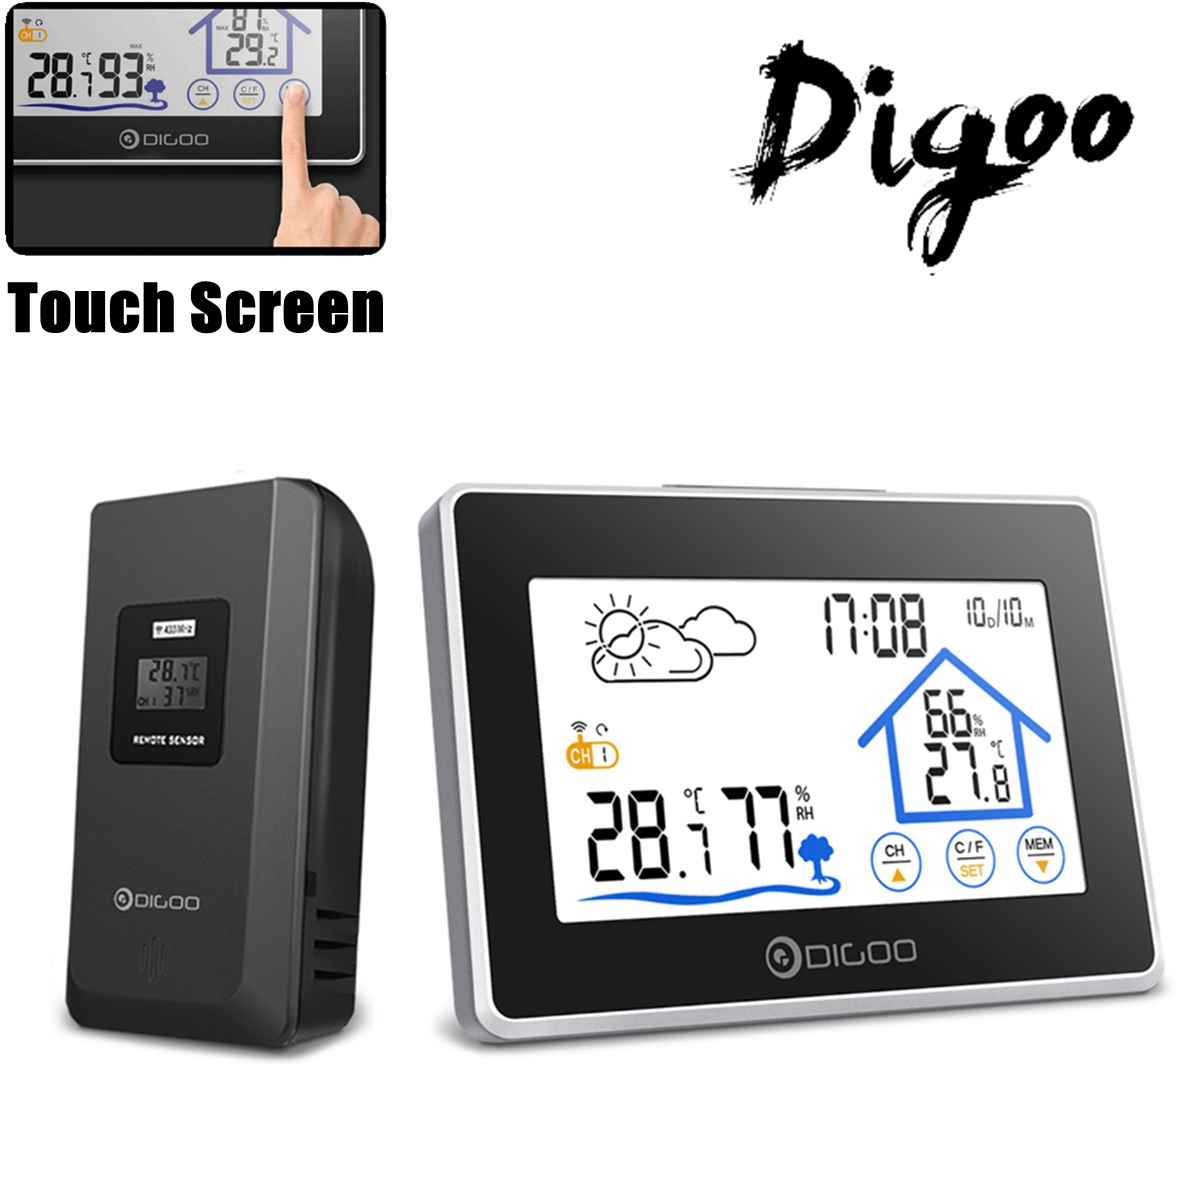 Digoo DG-TH8380 Wireless Weather Station,Thermometer Humidity Indoor & Outdoor (°C/°F) Forecast Sensor Clock,LCD Touch Screen